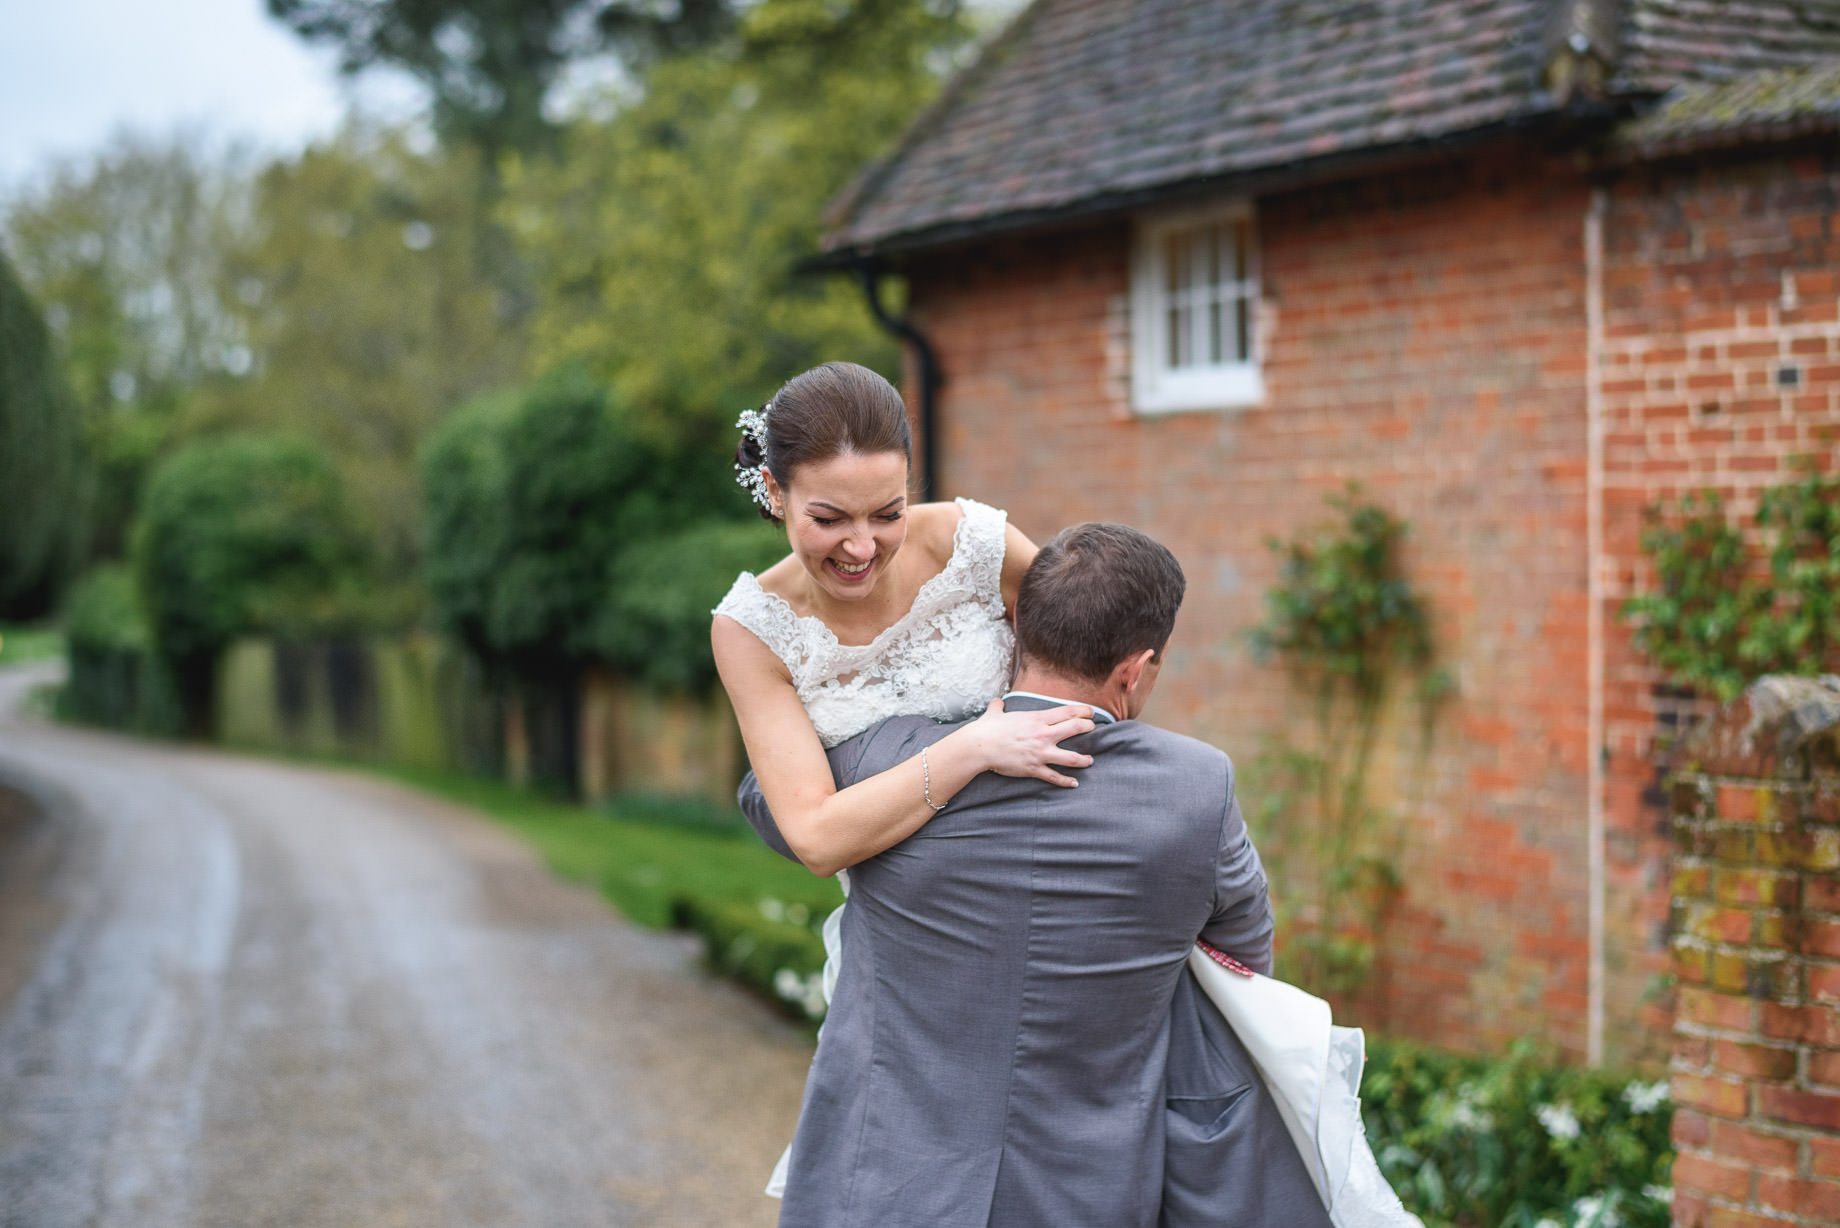 Best wedding photography by Guy Collier - Sheri and Chris (107 of 121)